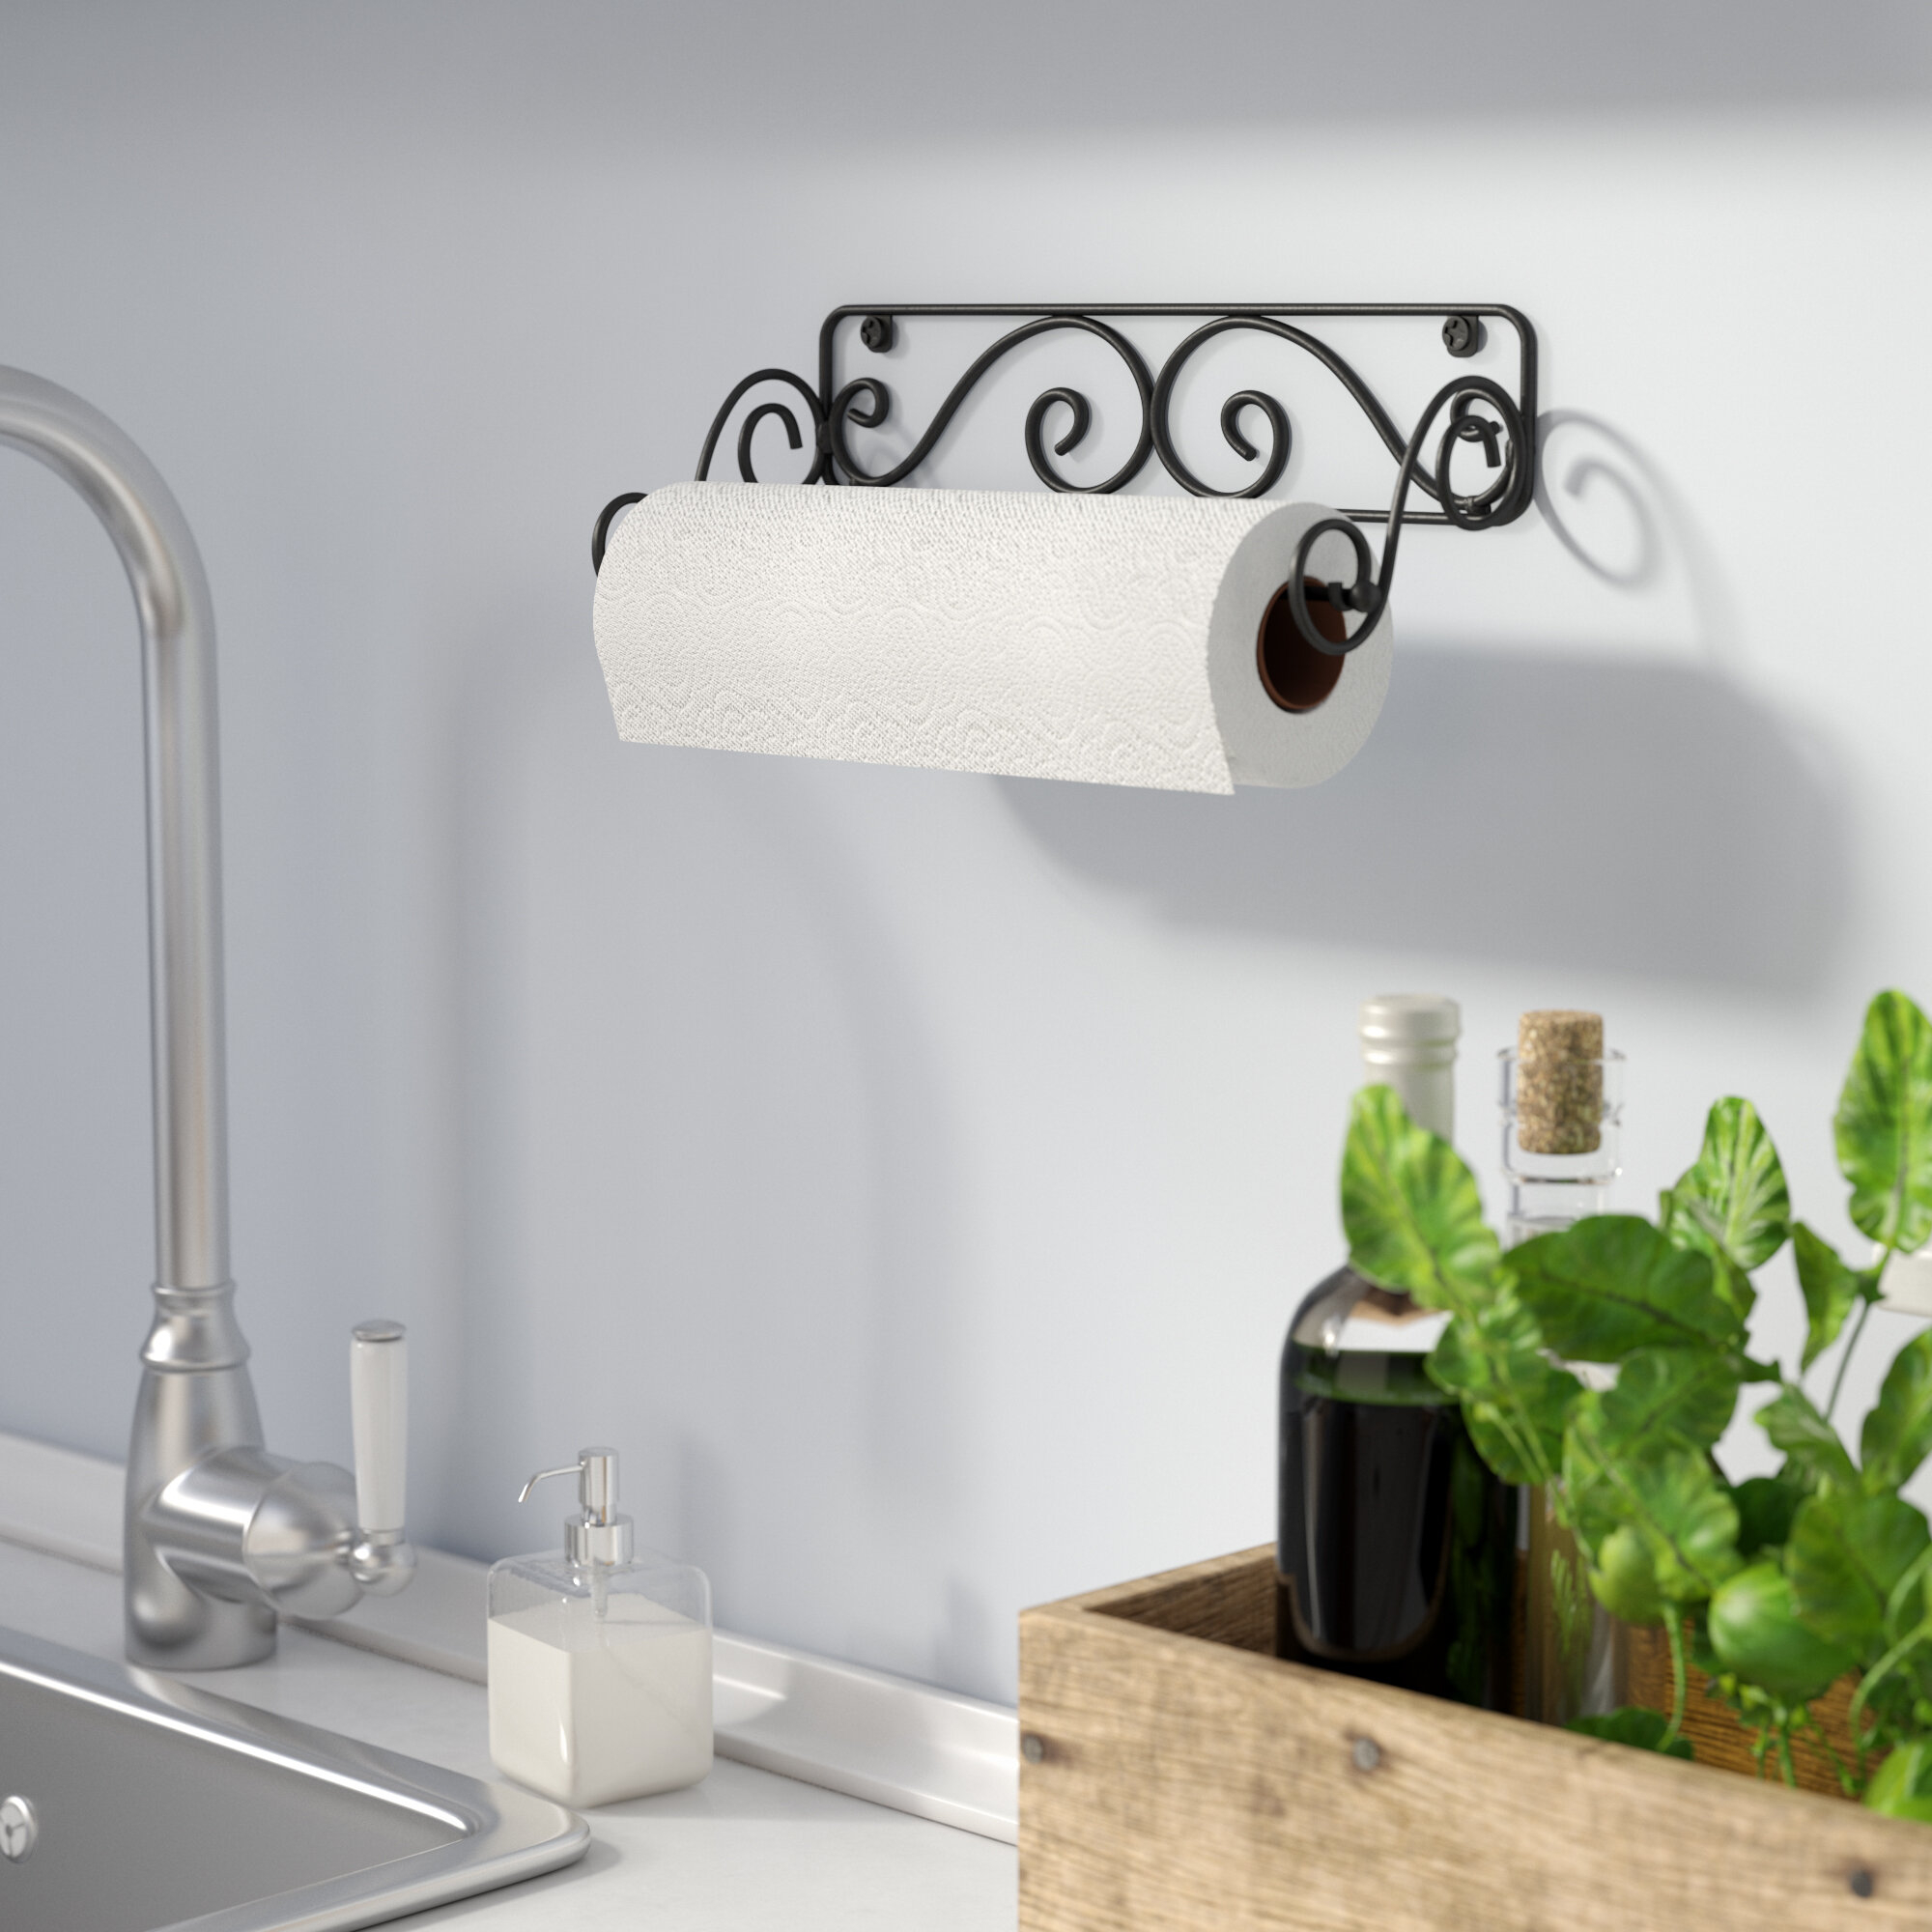 Decorative Paper Towel Holder Wall Mount Visual Hunt